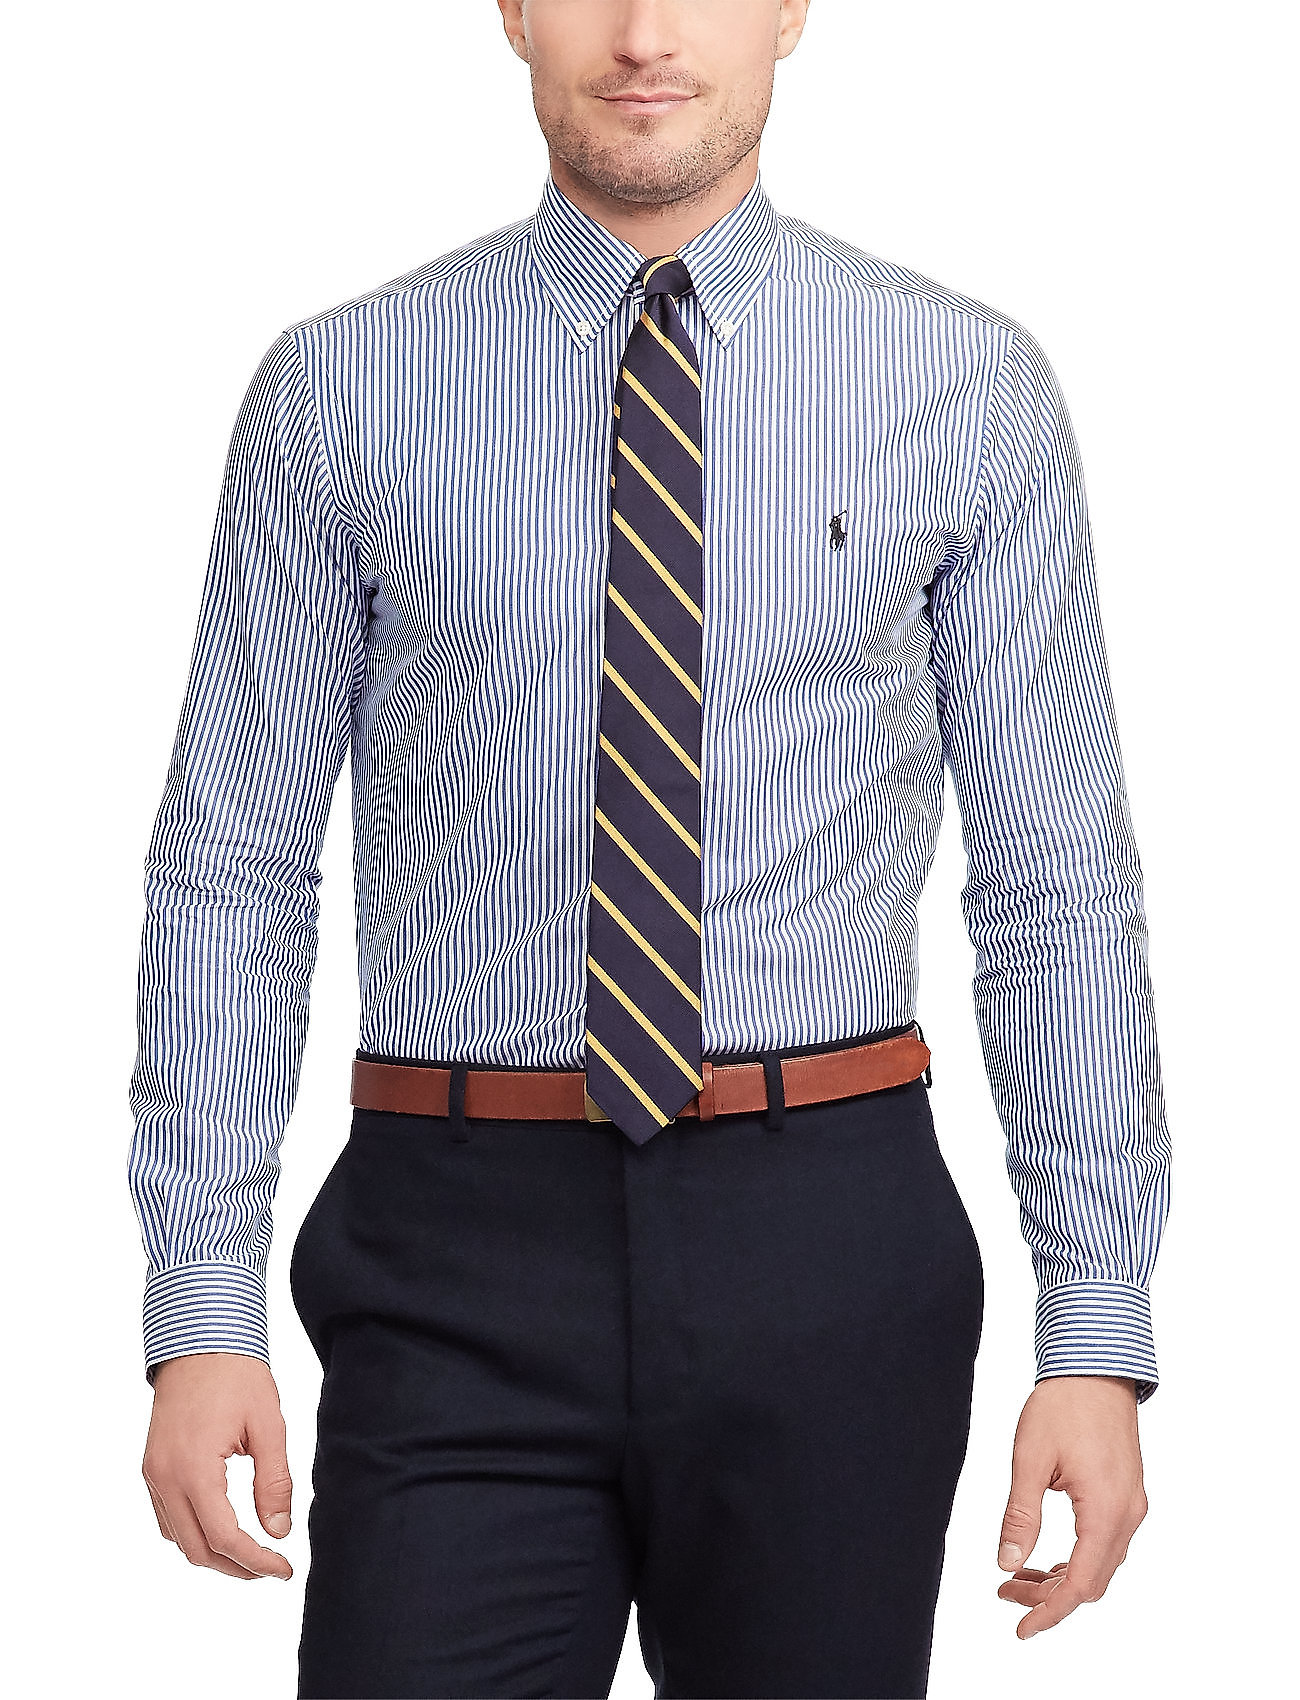 Polo Ralph Lauren - Slim Fit Stretch Cotton Shirt - business shirts - blue/white bengal - 0